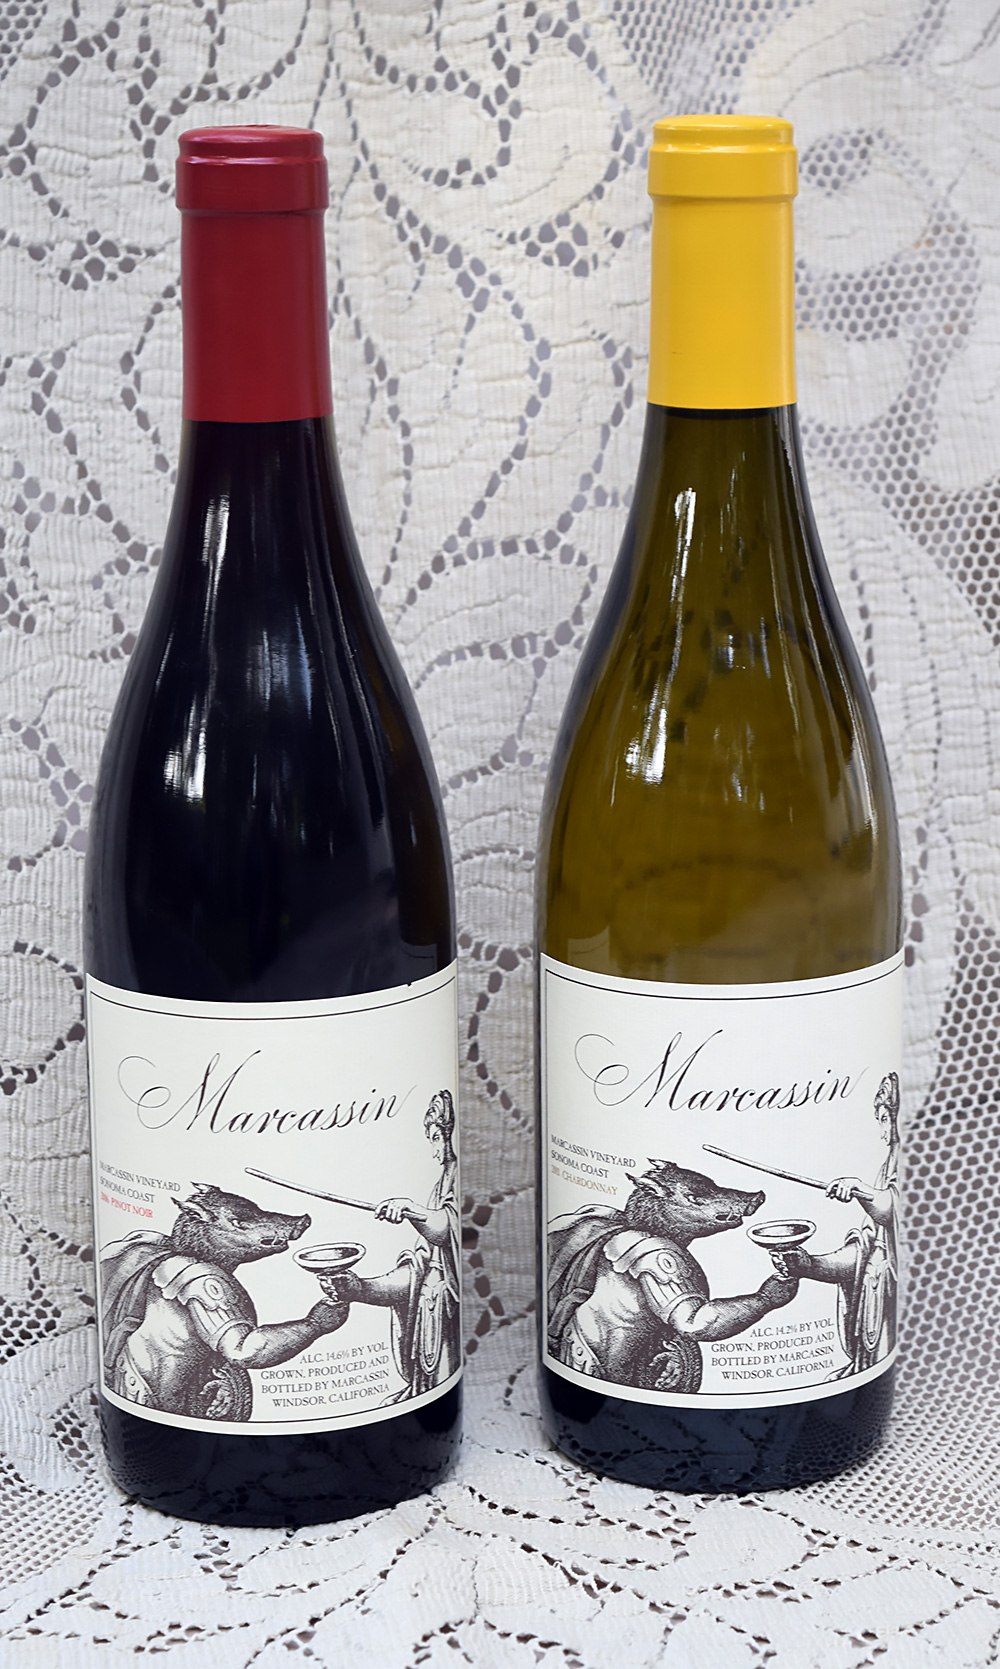 While most of the cult wines in California are Napa cabernets and cabernet blends, Marcassin Vineyards, whose grapes are grown on the Sonoma Coast, makes pinot noirs and chardonnays that are craved by some aficionados of these cool-climate varietals.